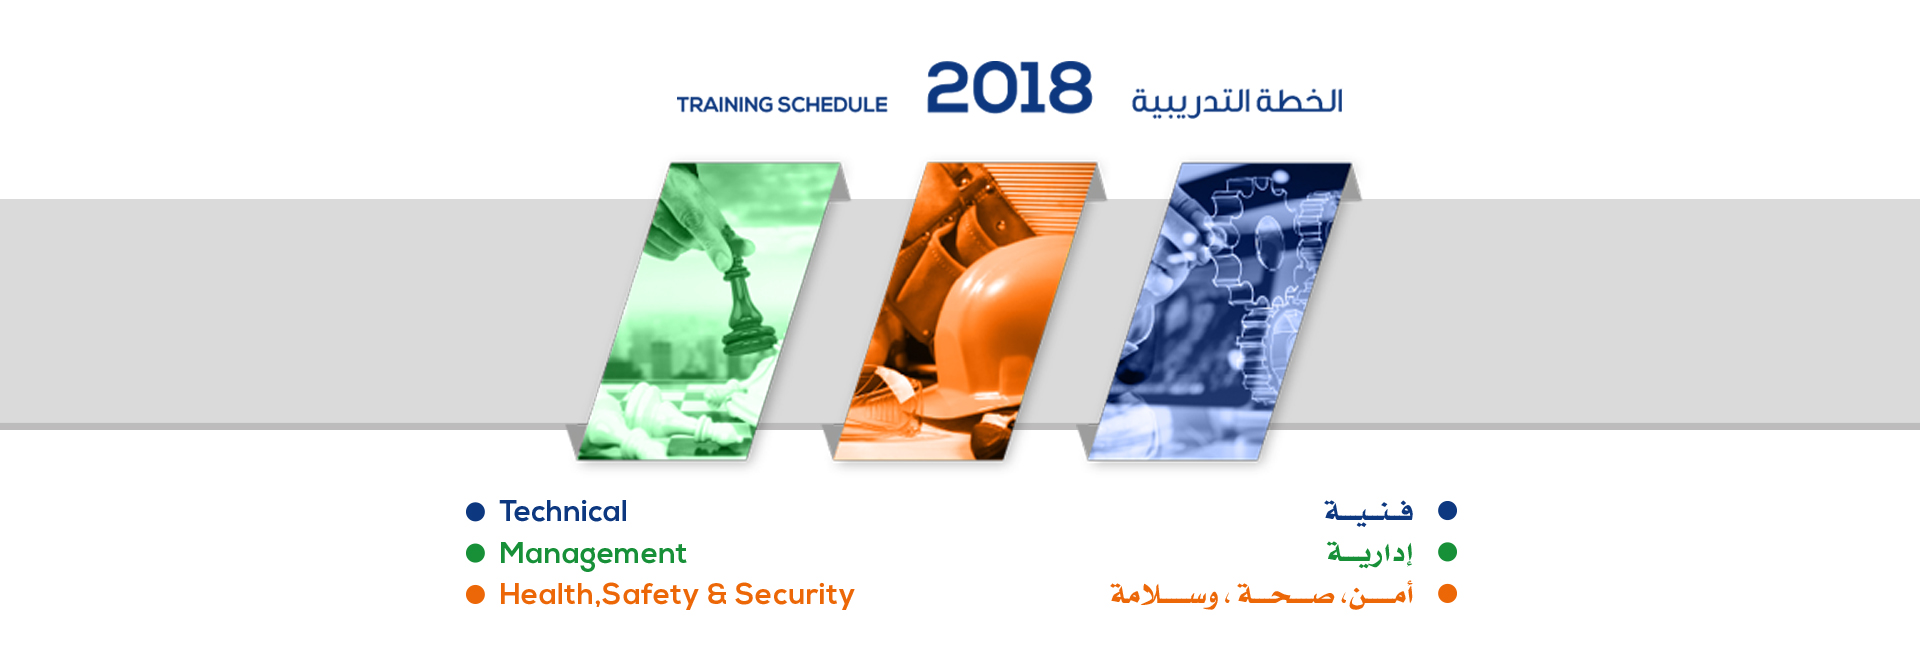 Training Schedule 2018